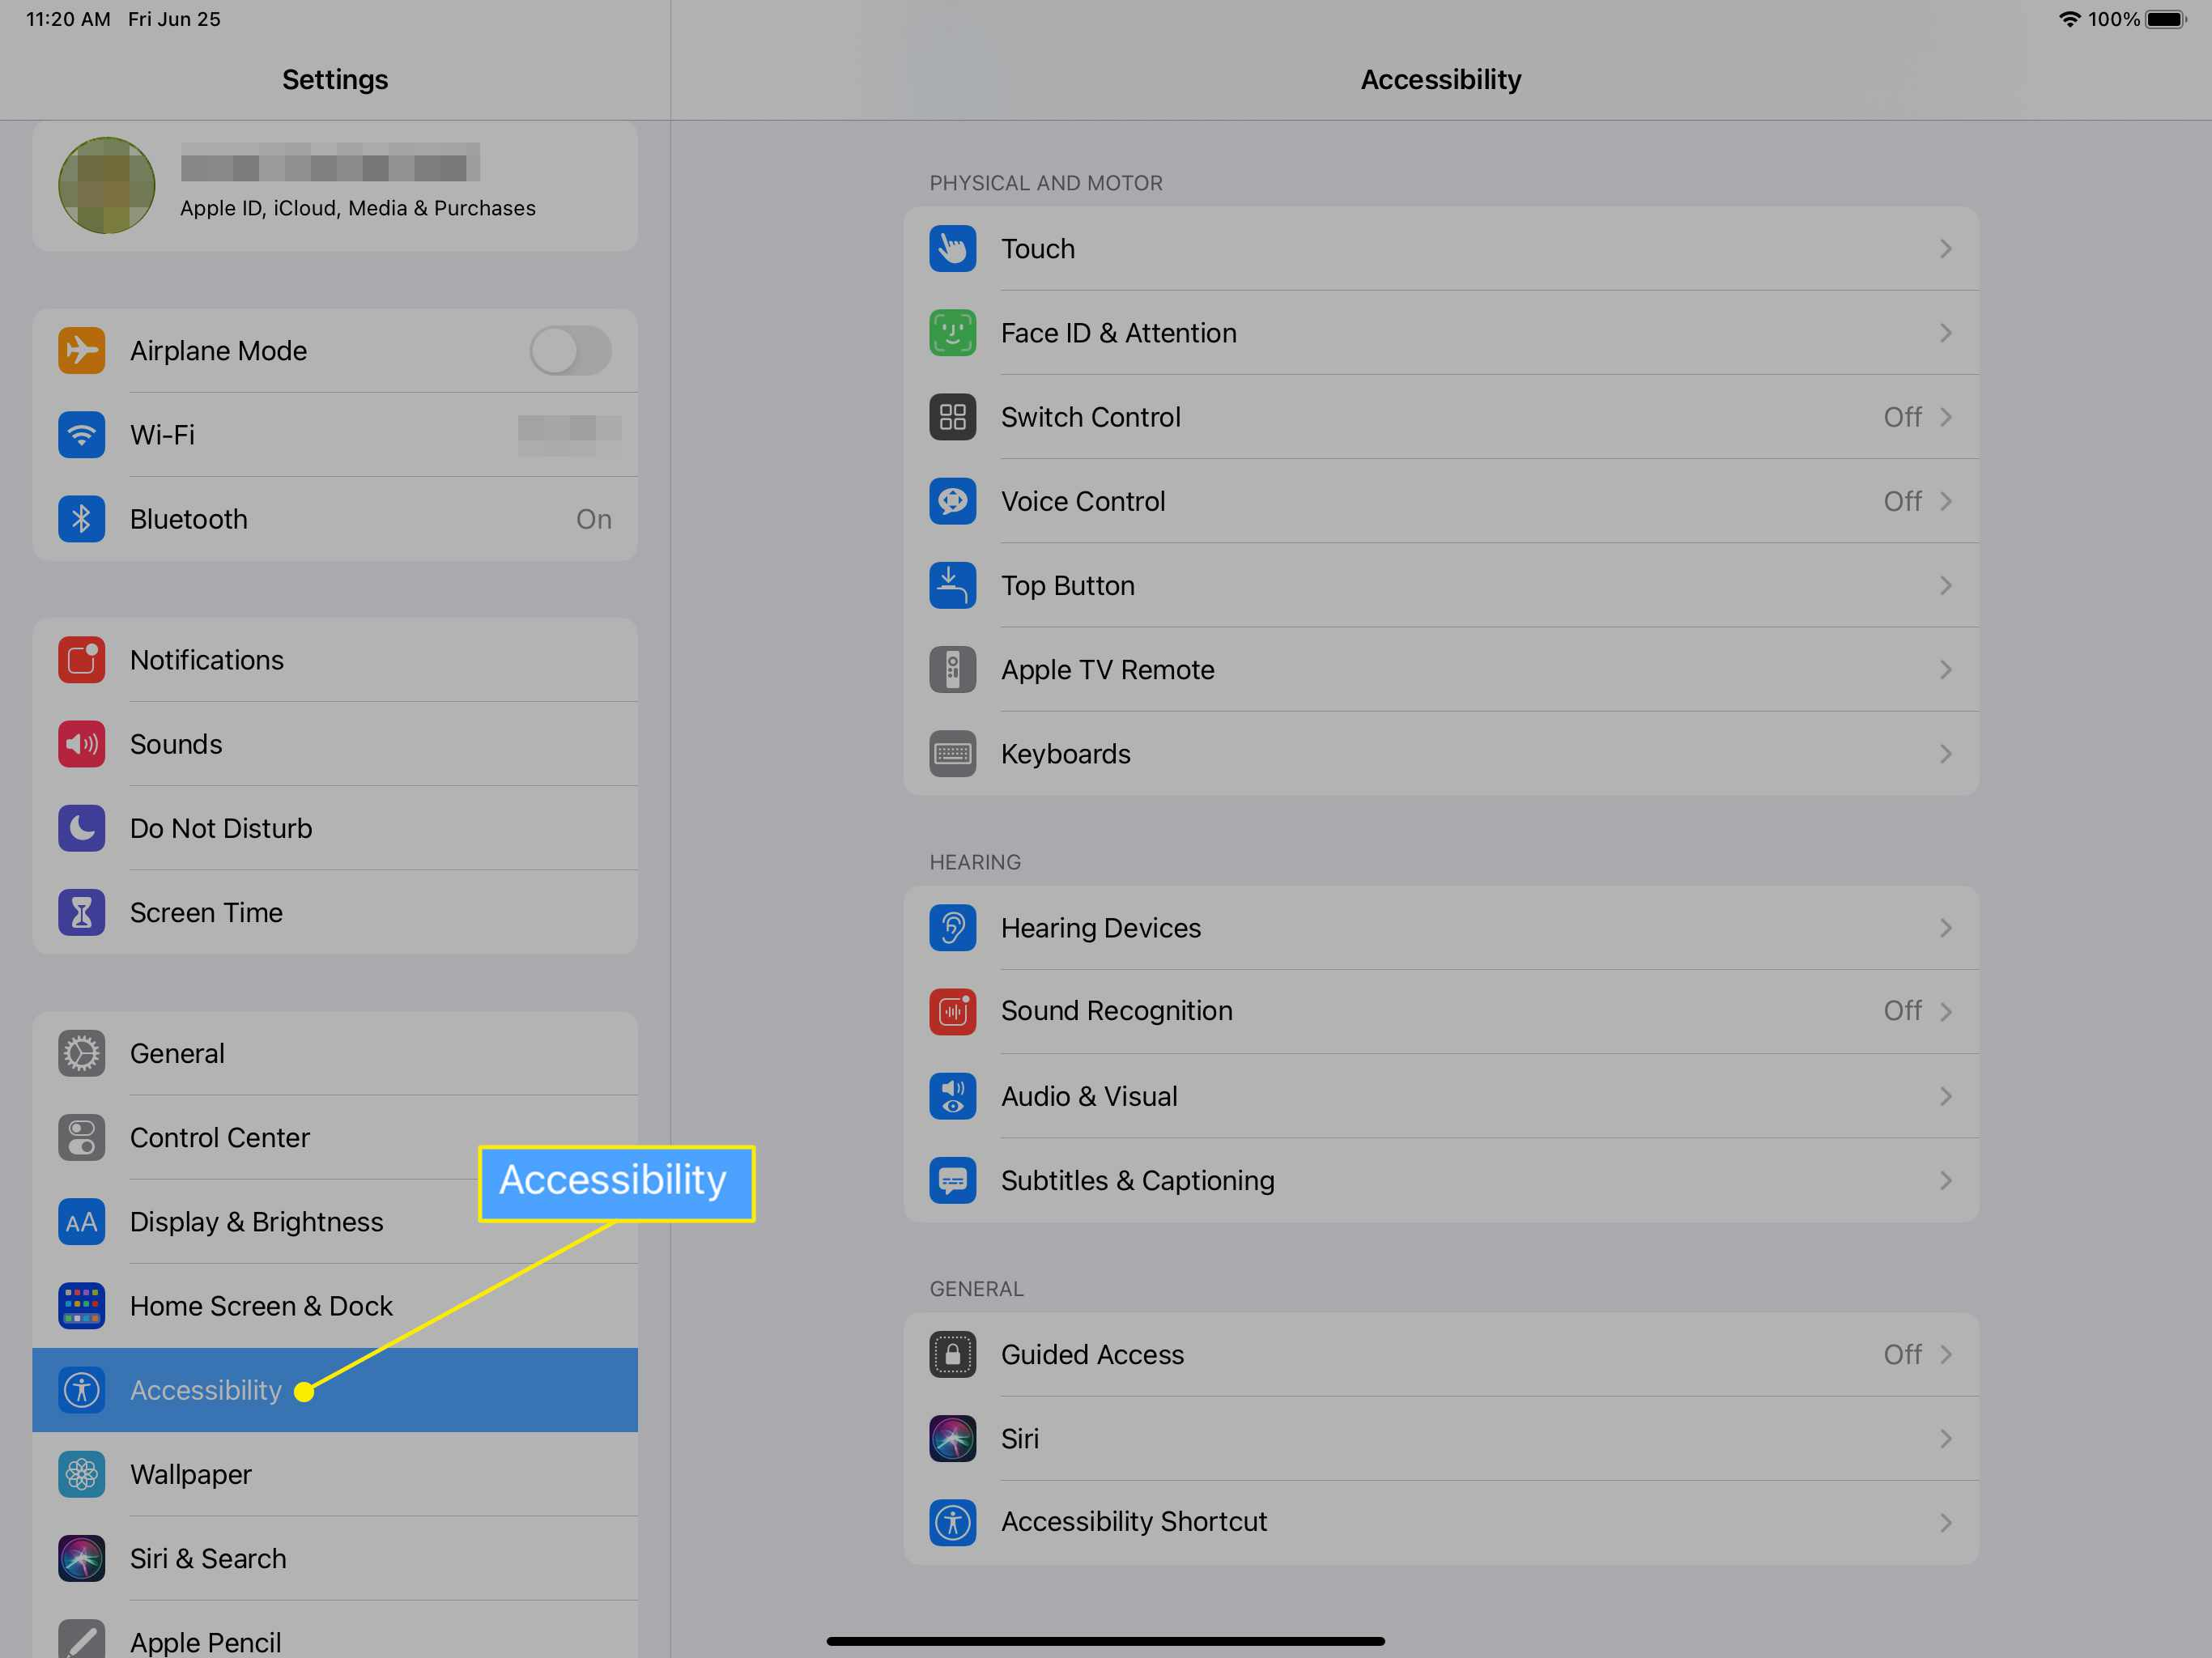 iPad settings sidebar with Accessibility selected